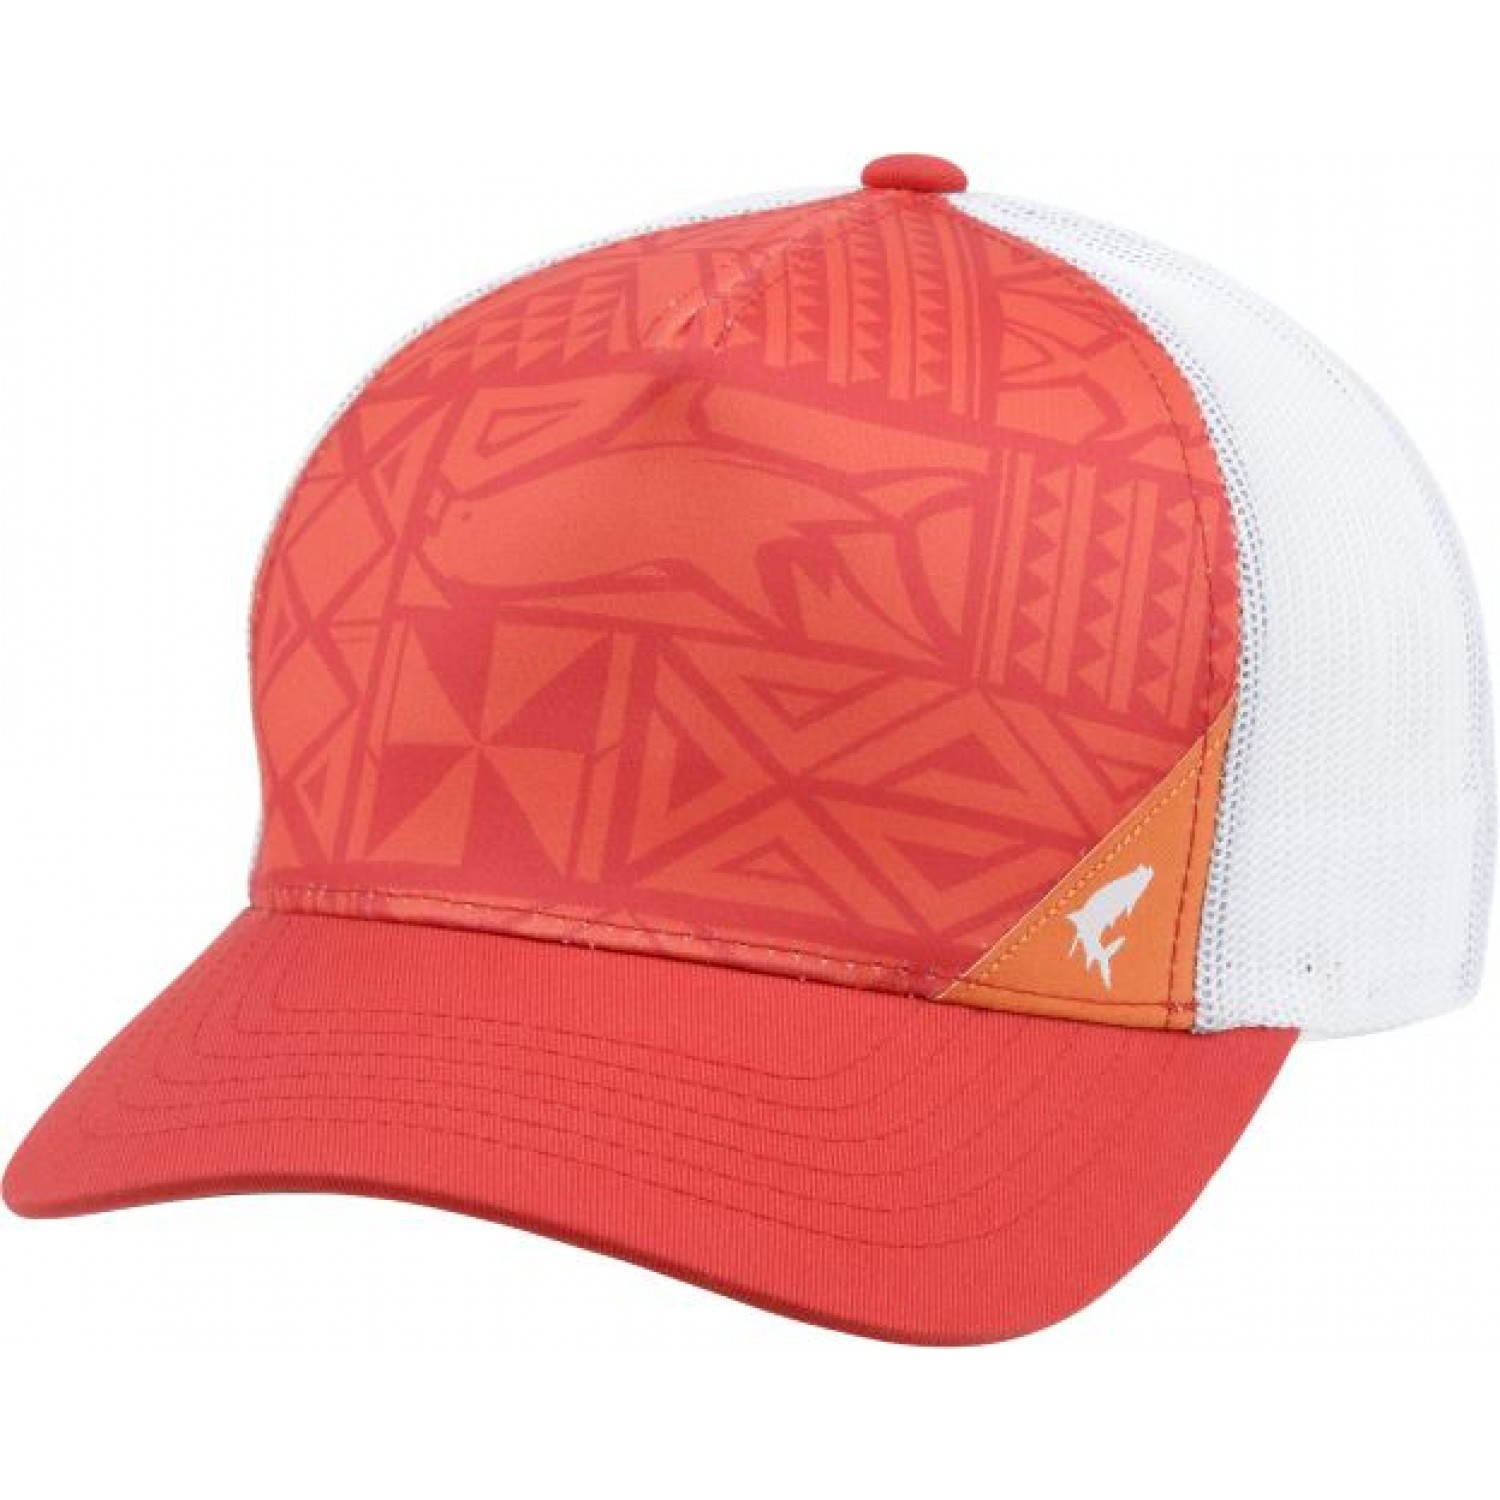 Simms Flexfit 5-panel Trucker Cap Block Print Scarlet